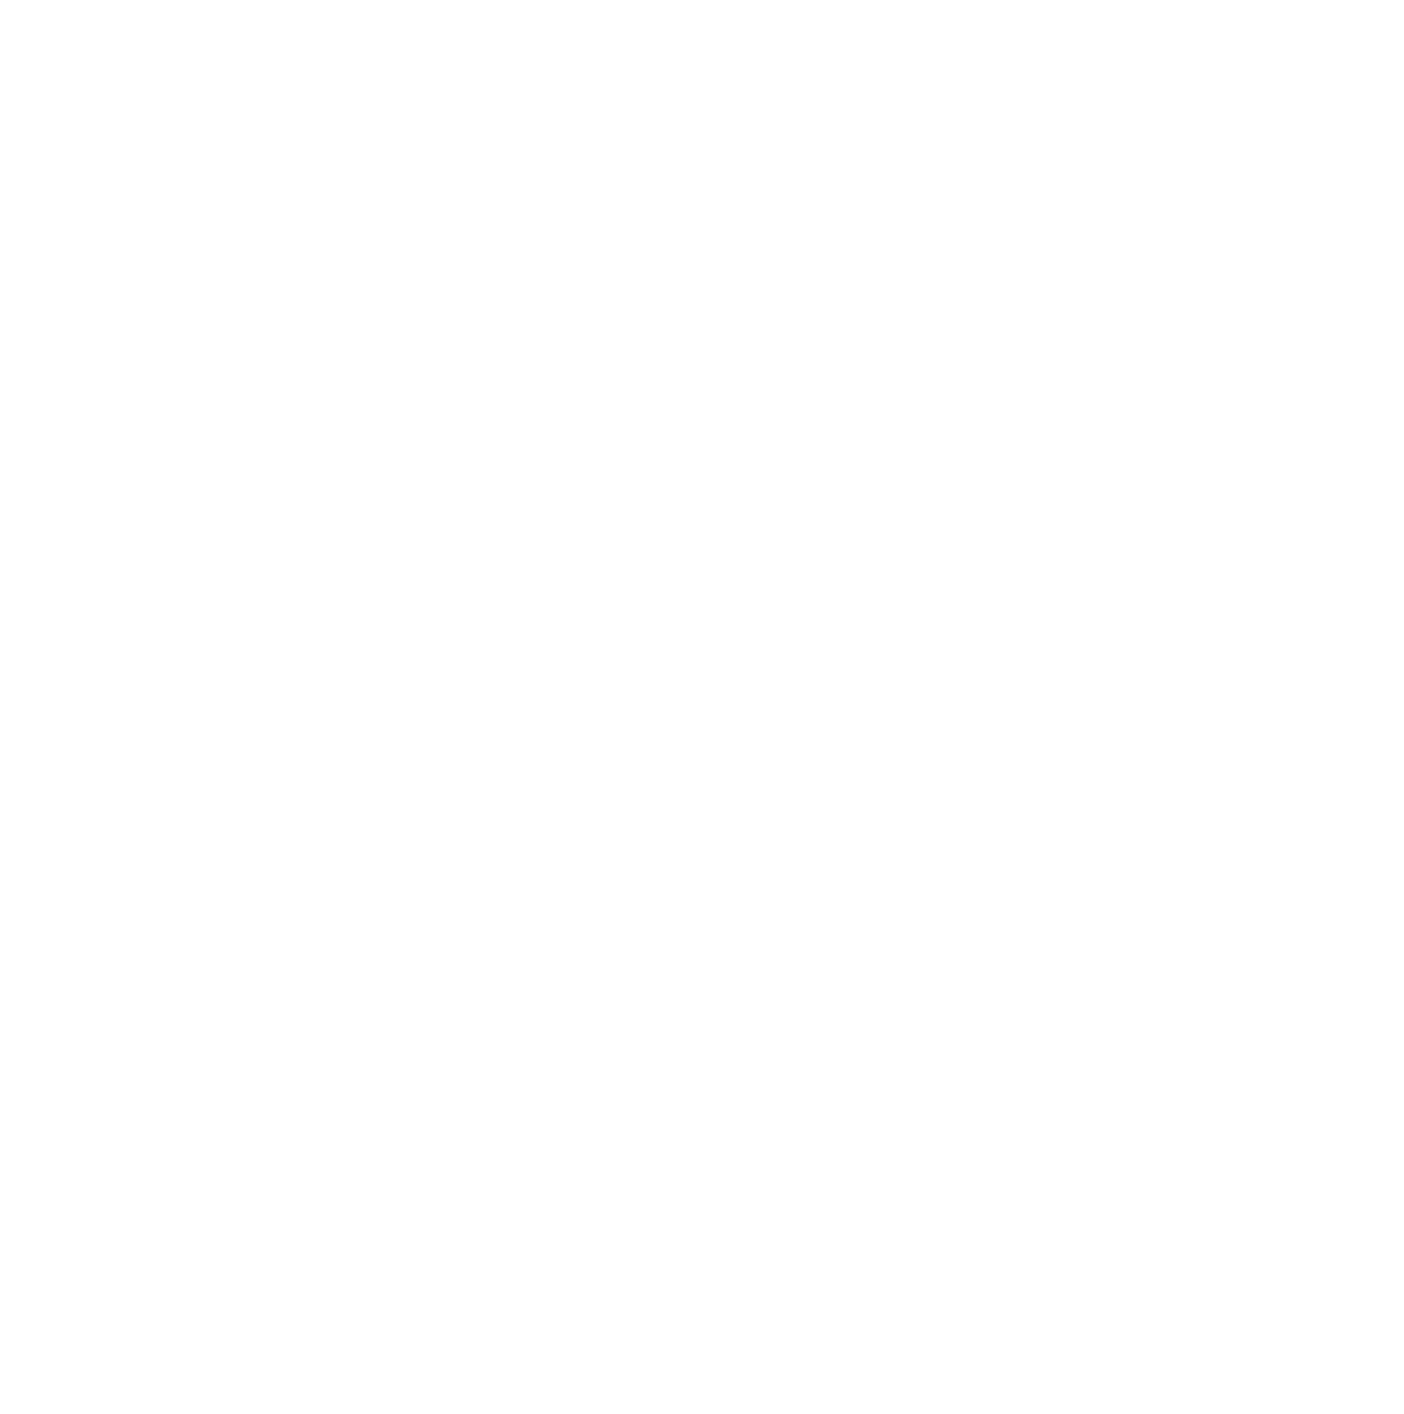 lines-1.png